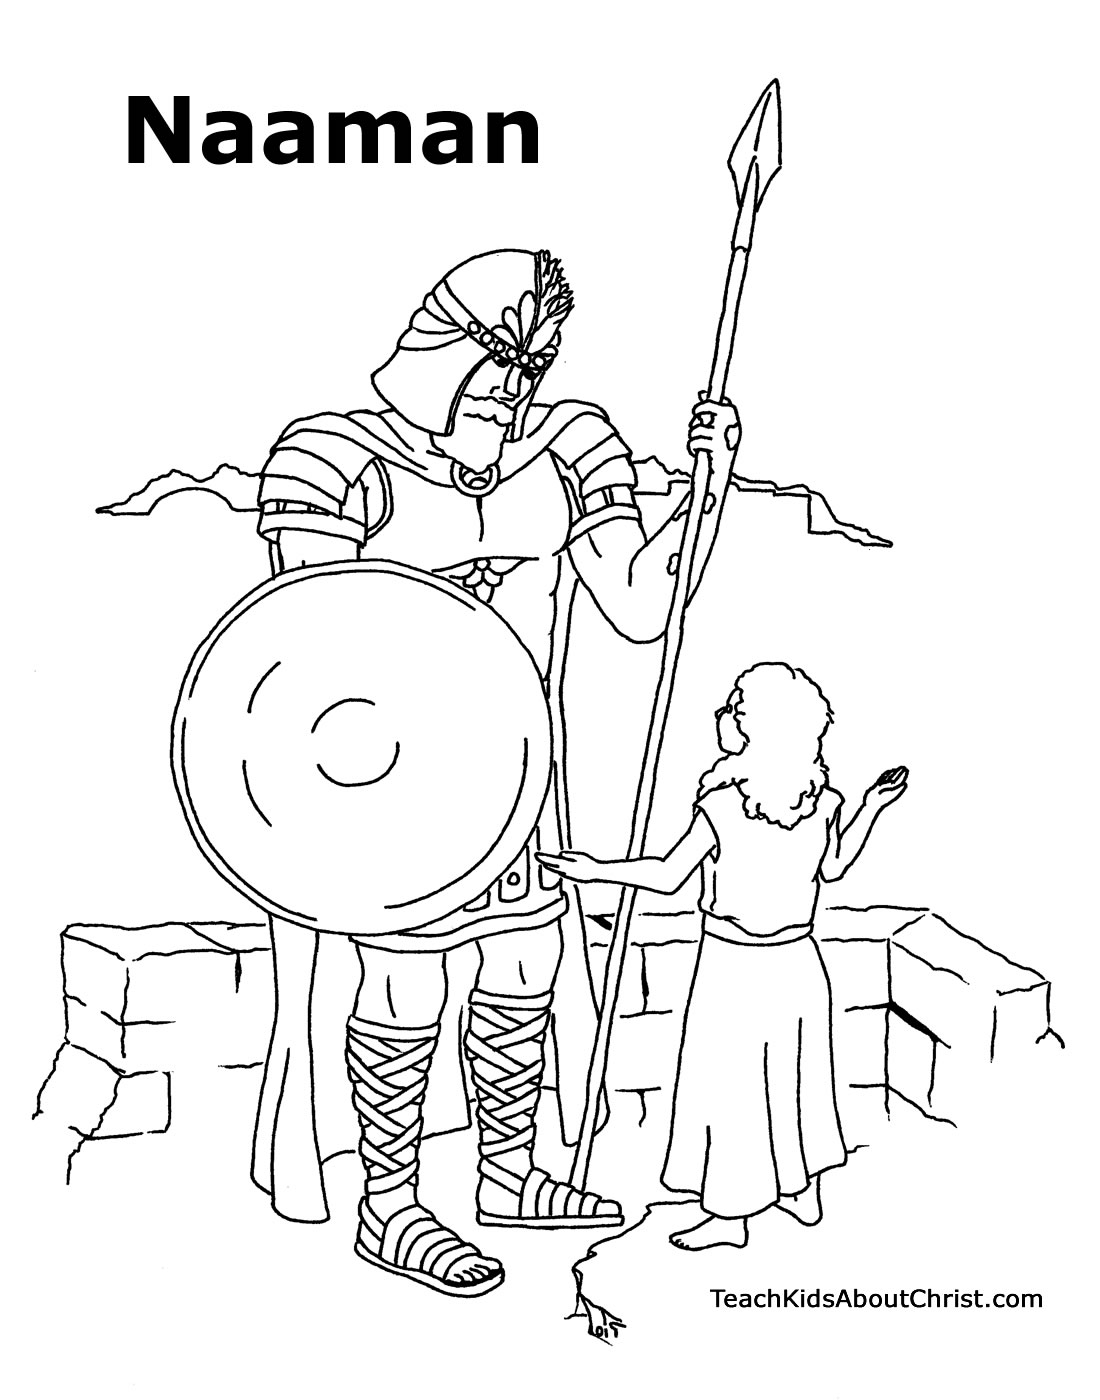 naaman and the servant girl coloring pages - photo #3